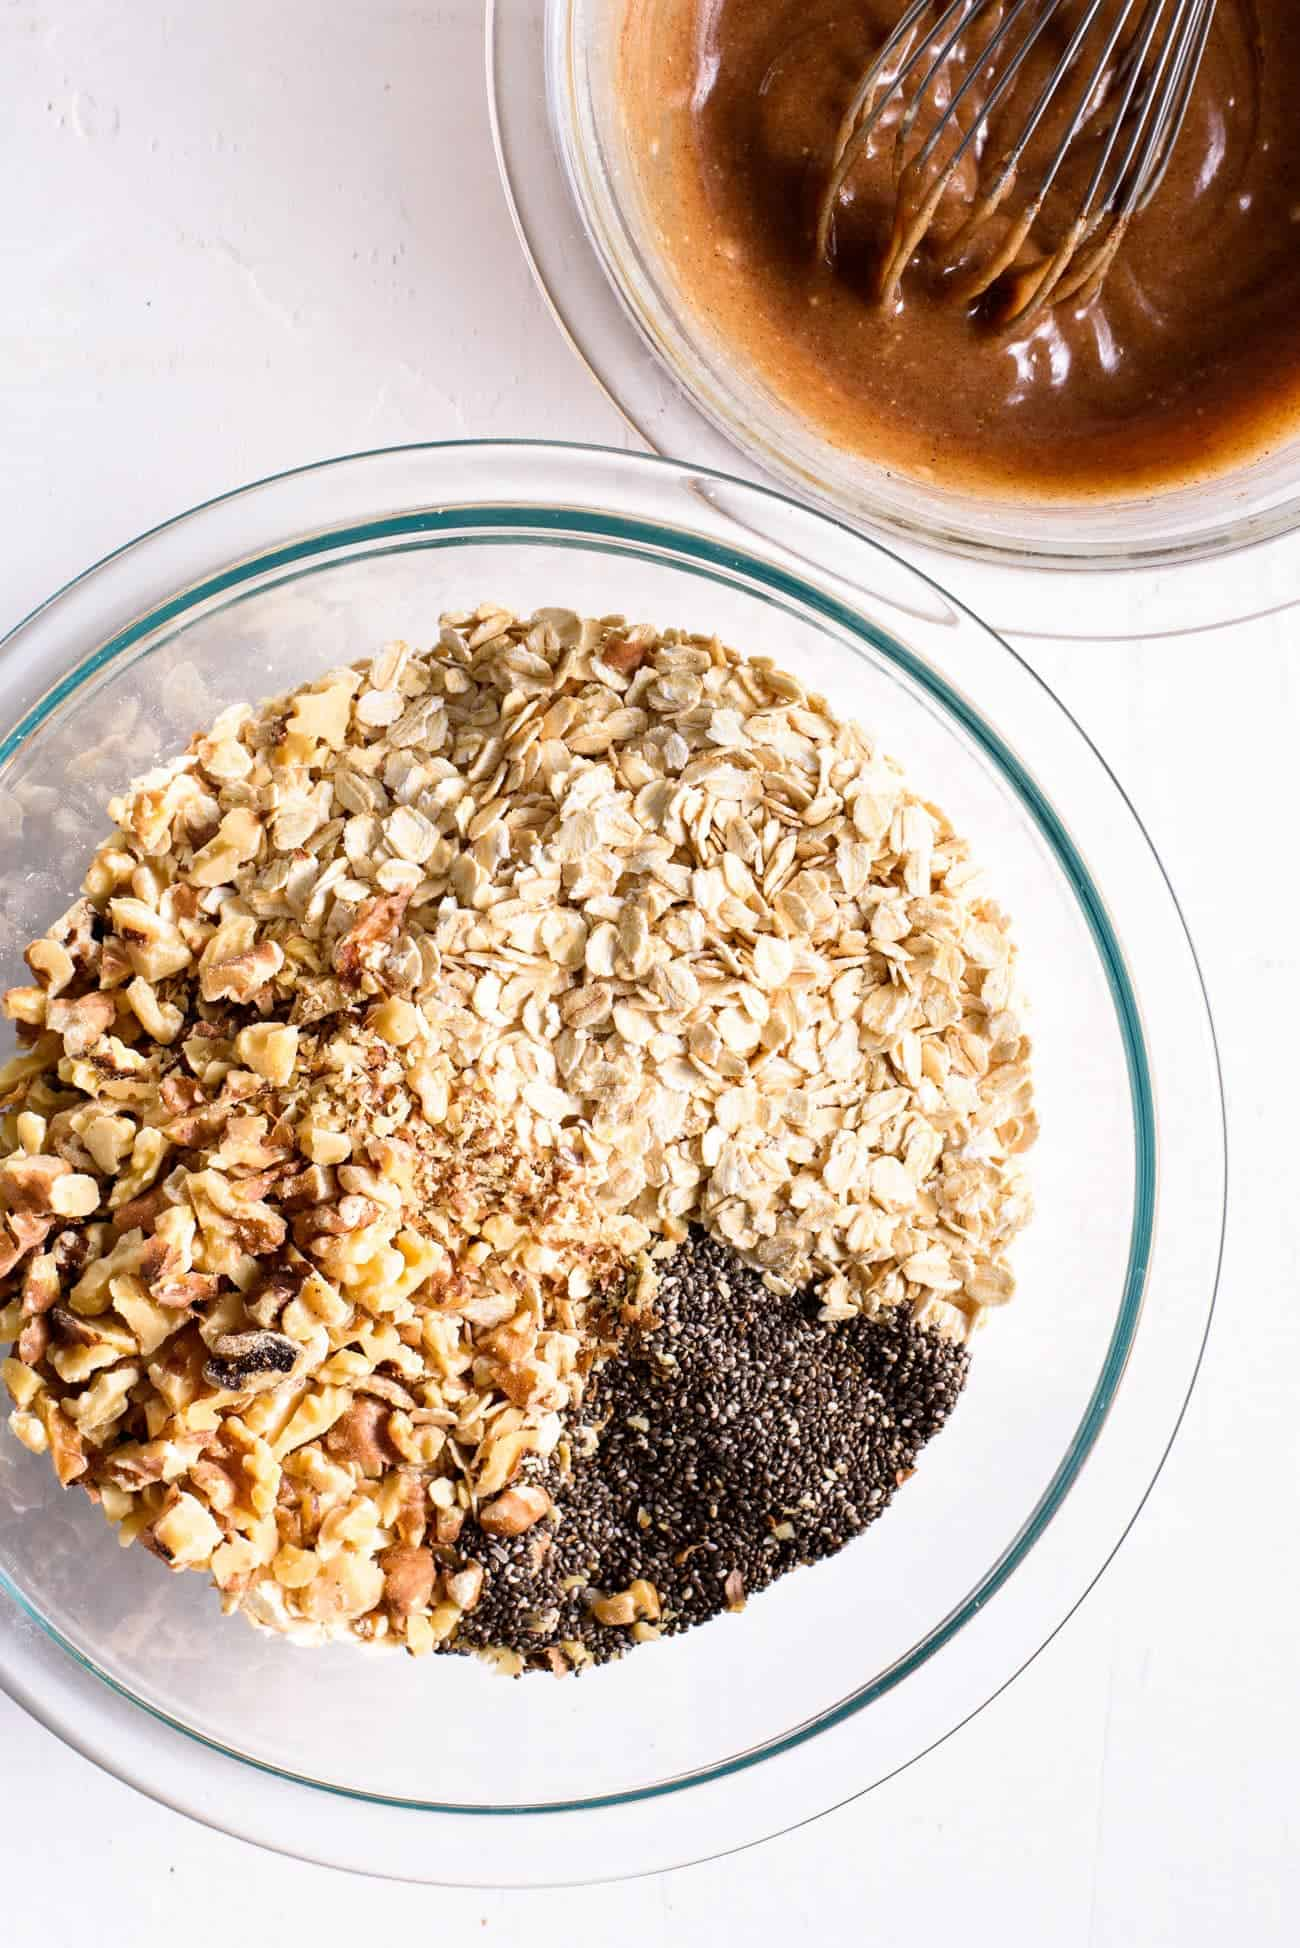 Ingredients to make tahini granola in glass Pyrex bowls